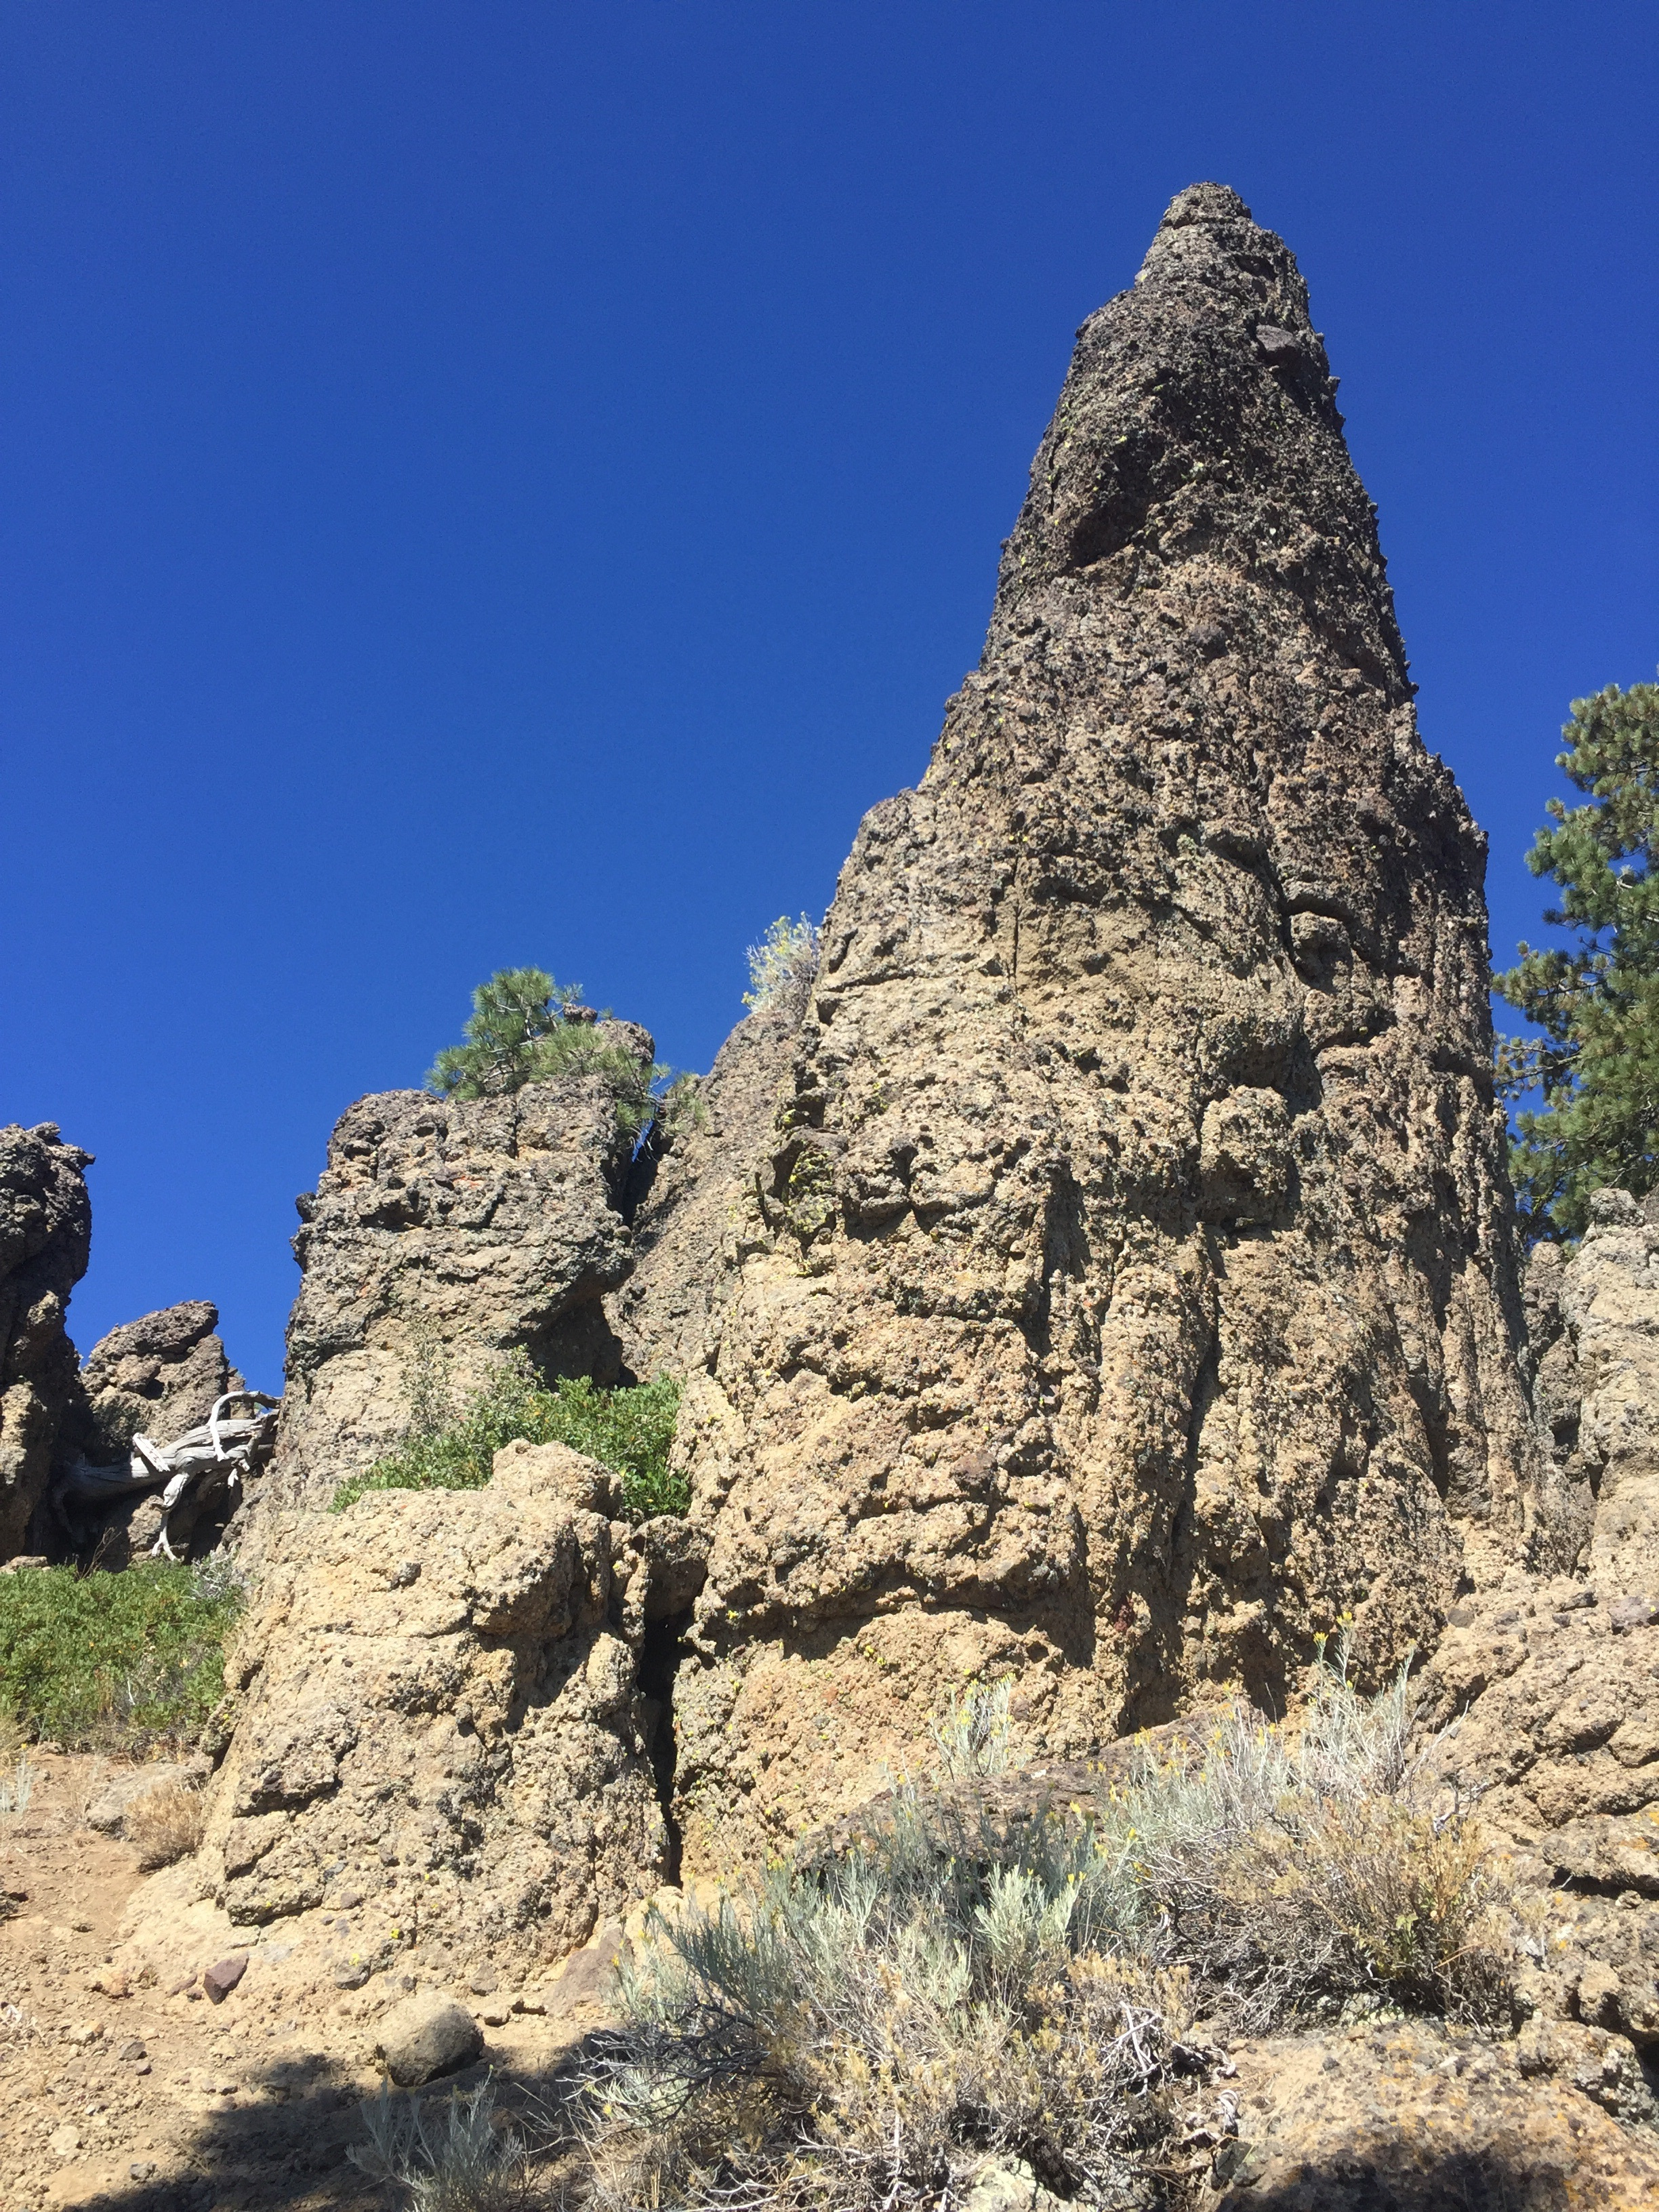 More rock stacks, this time sedimentary